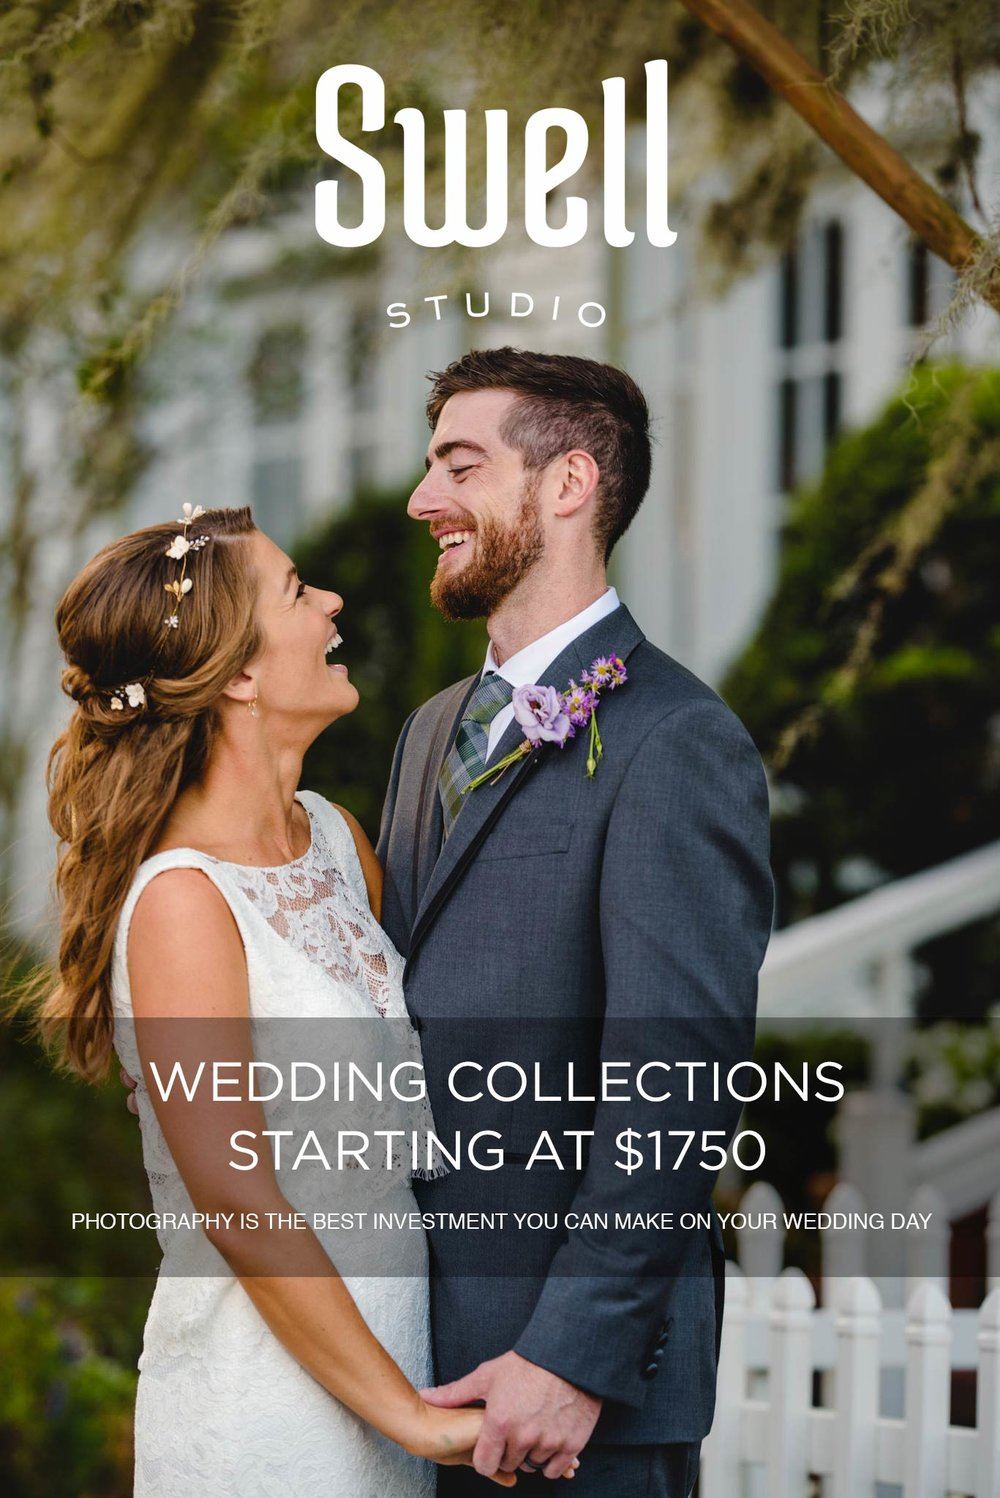 swell-studio-weddings.jpg